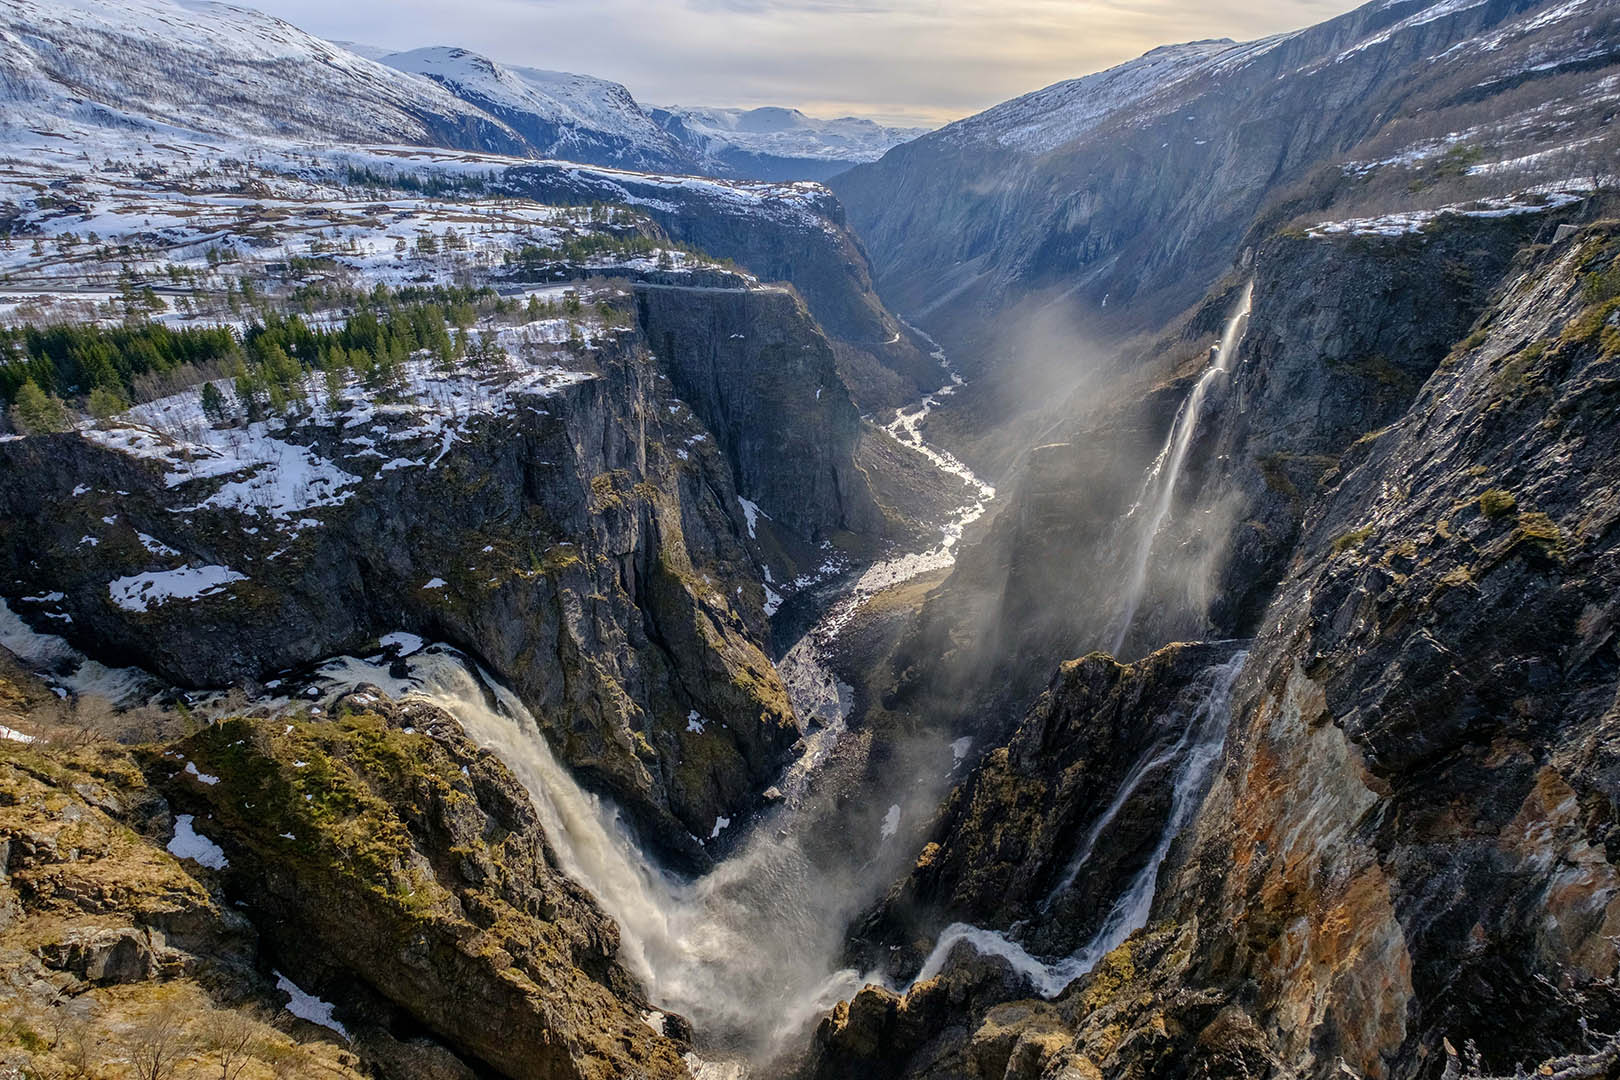 Fossli Hotel, Vøringsfossen, Enjoy an exciting stay near Europe's tallest waterfall, Photo by Erik Garen